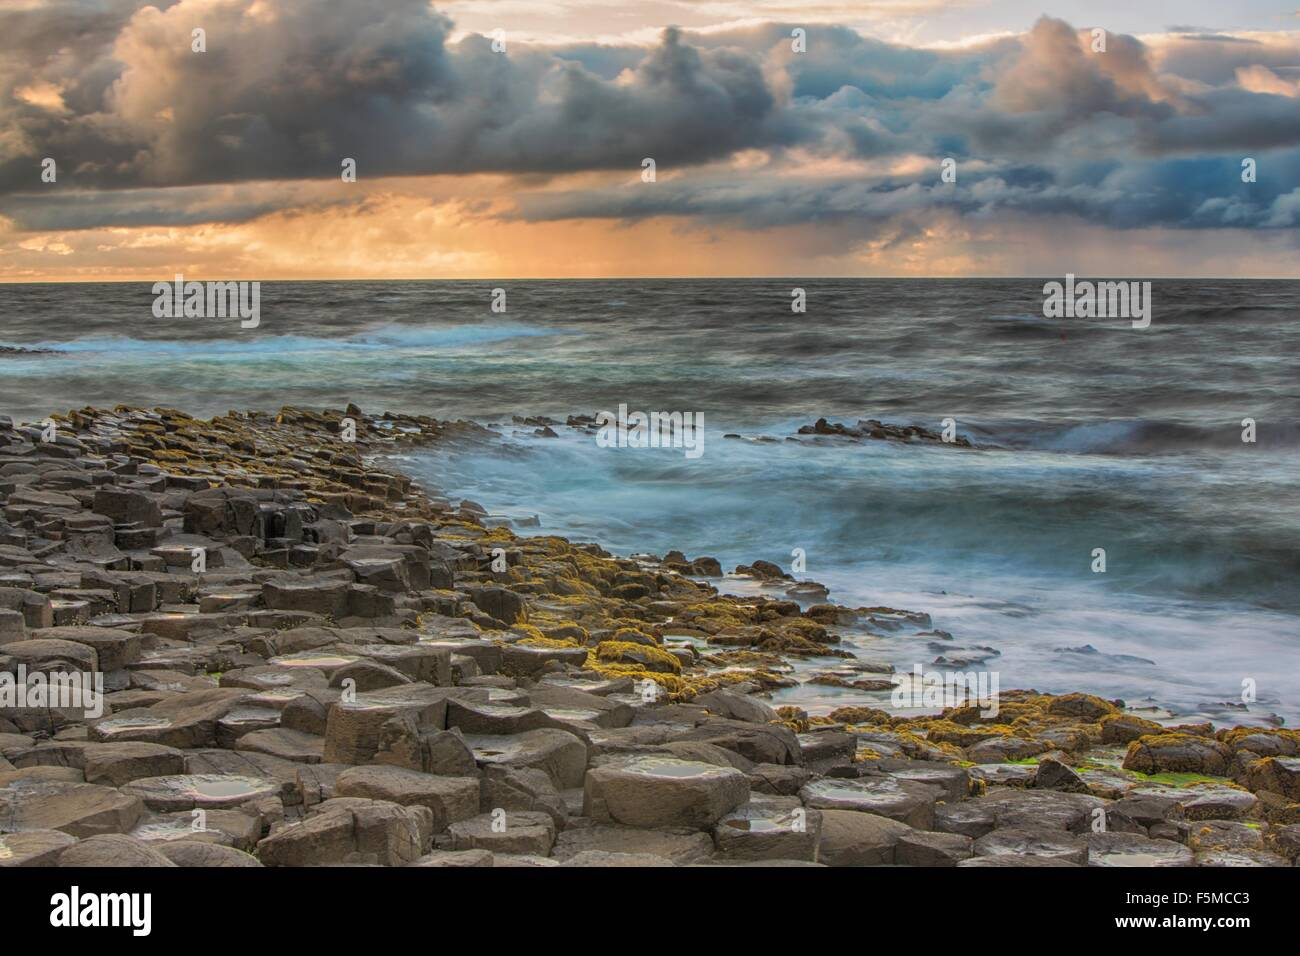 High angle view of Giants Causeway, ocean and dramatic sky, Bushmills, County Antrim, Ireland, UK - Stock Image